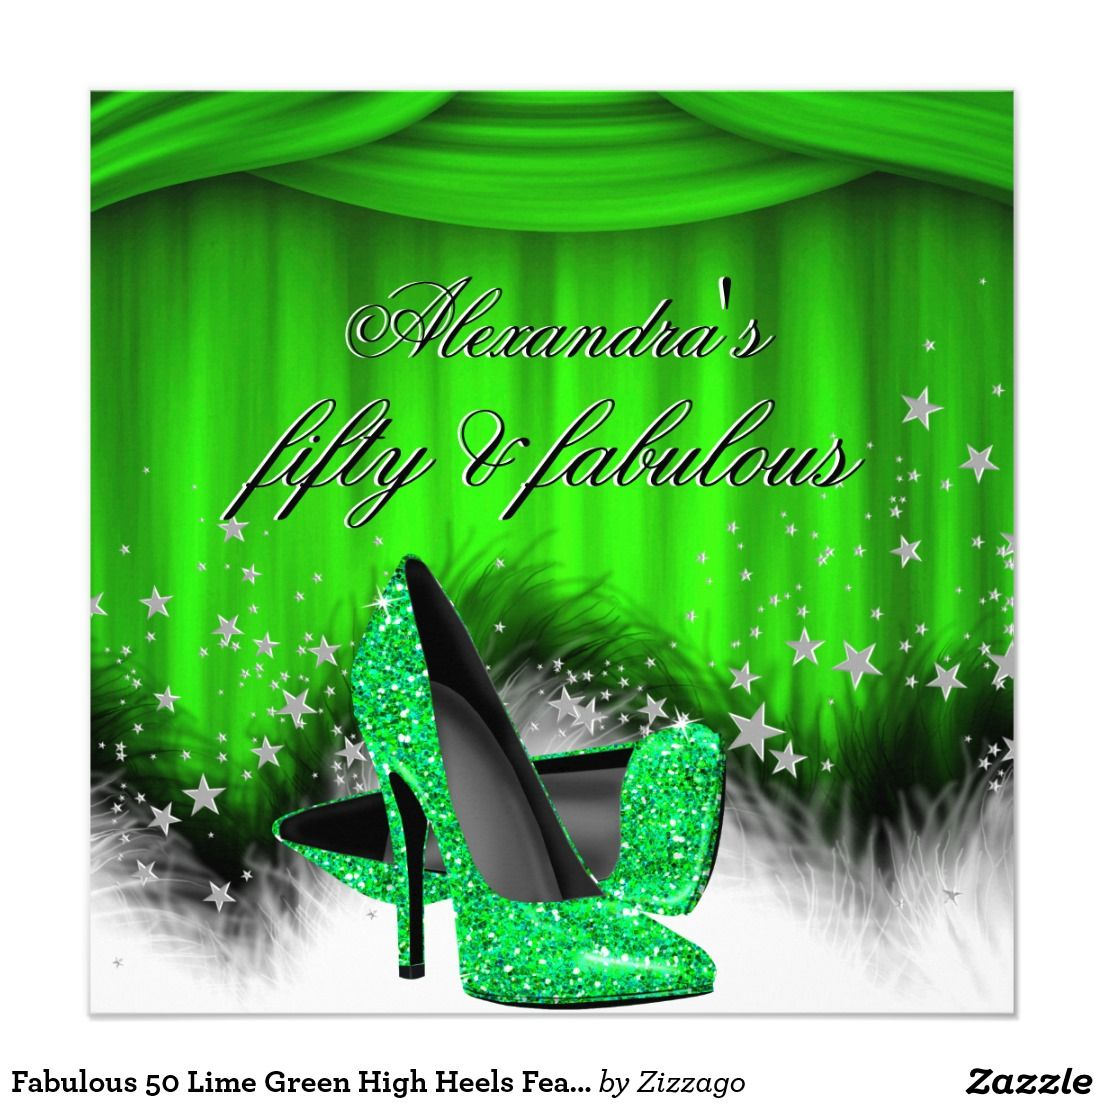 Fabulous 50 Lime Green High Heels Feather Birthday 525x525 Square